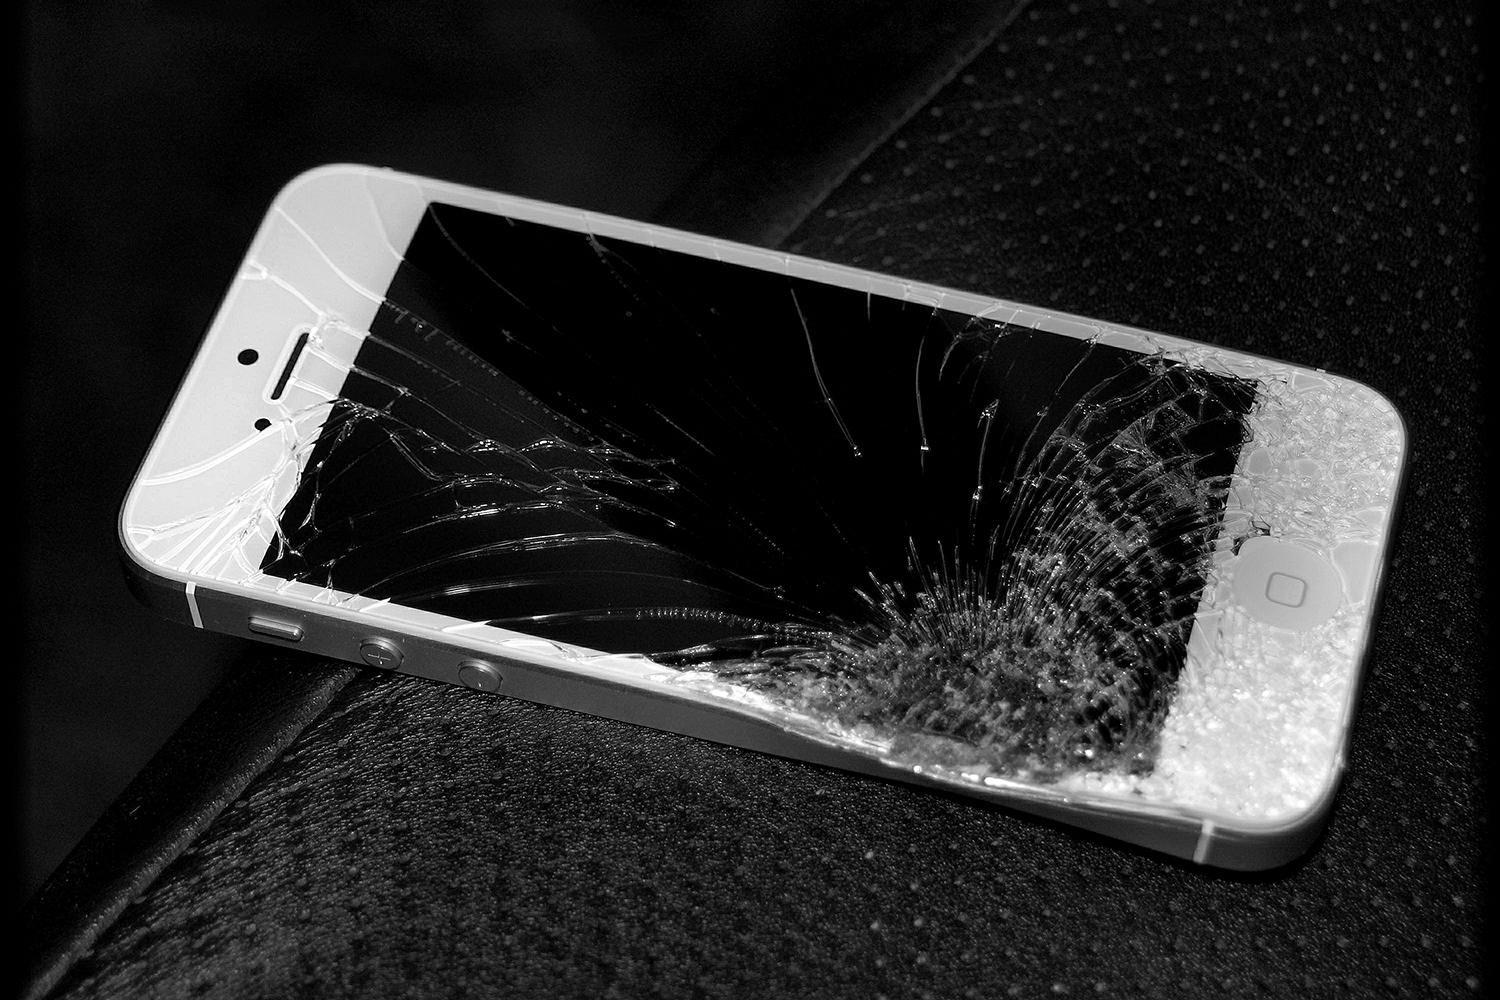 Smash your iPhone? You may still be eligible for Apple Store credit